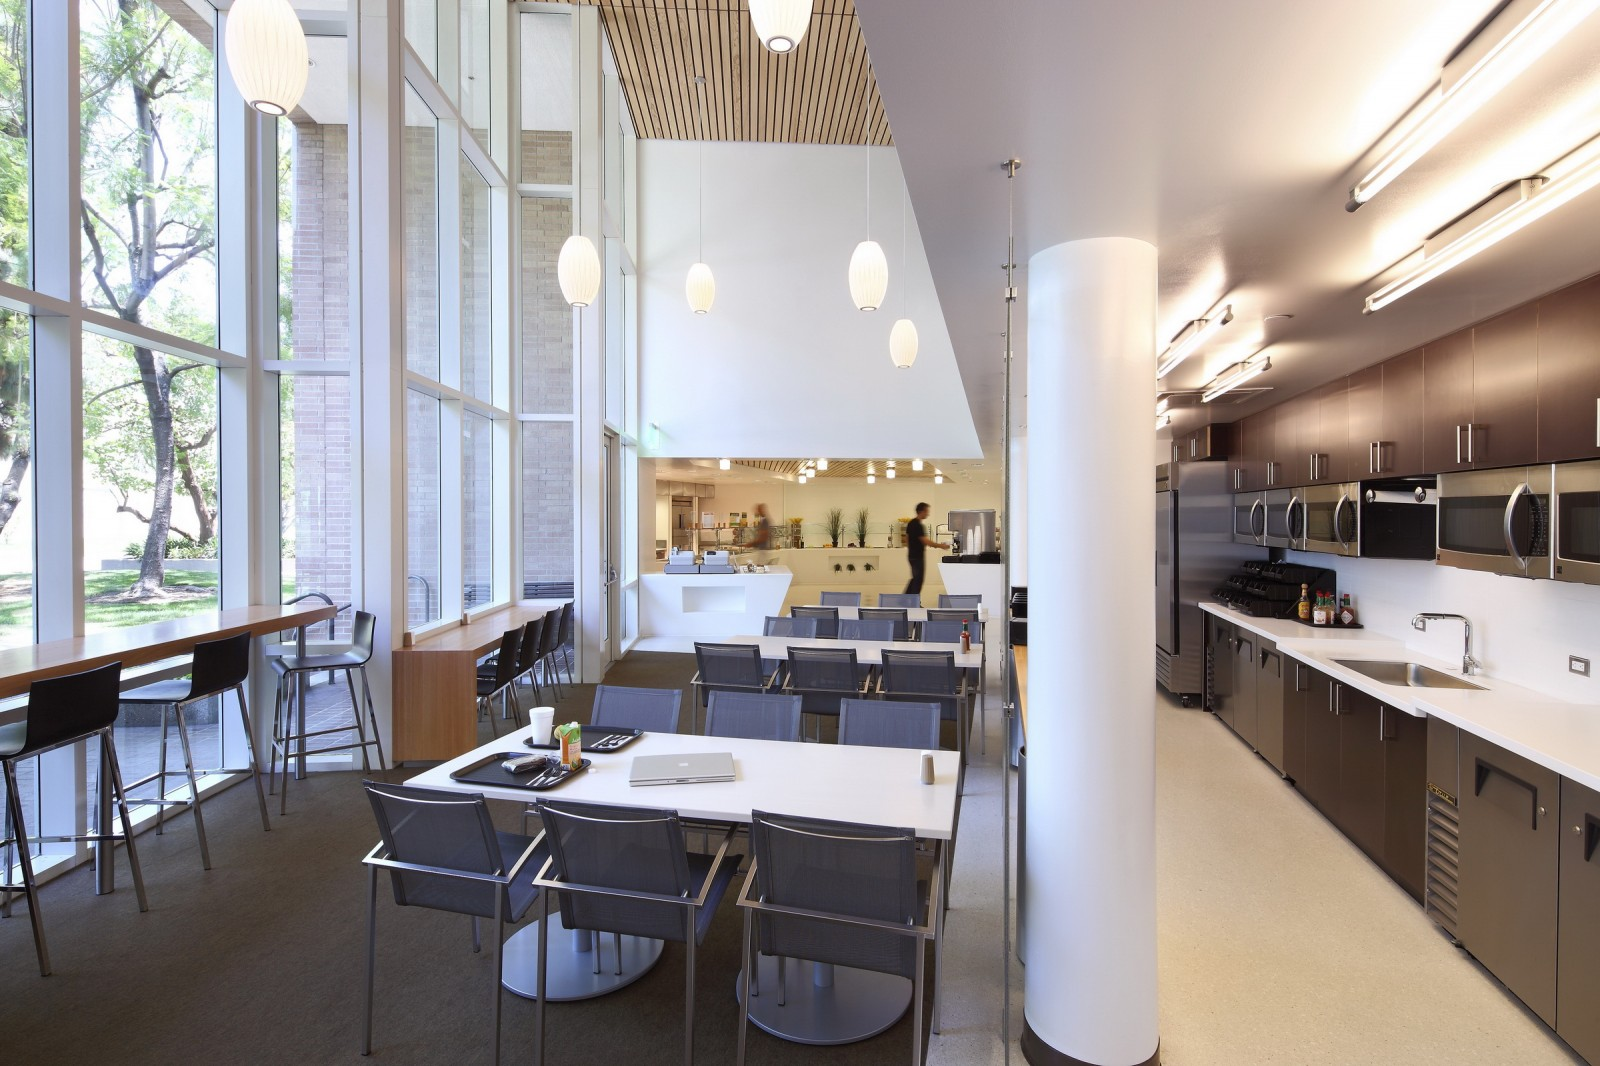 Renovation Warehouse Corporate Cafeteria Renovation Work Eyrc Architects